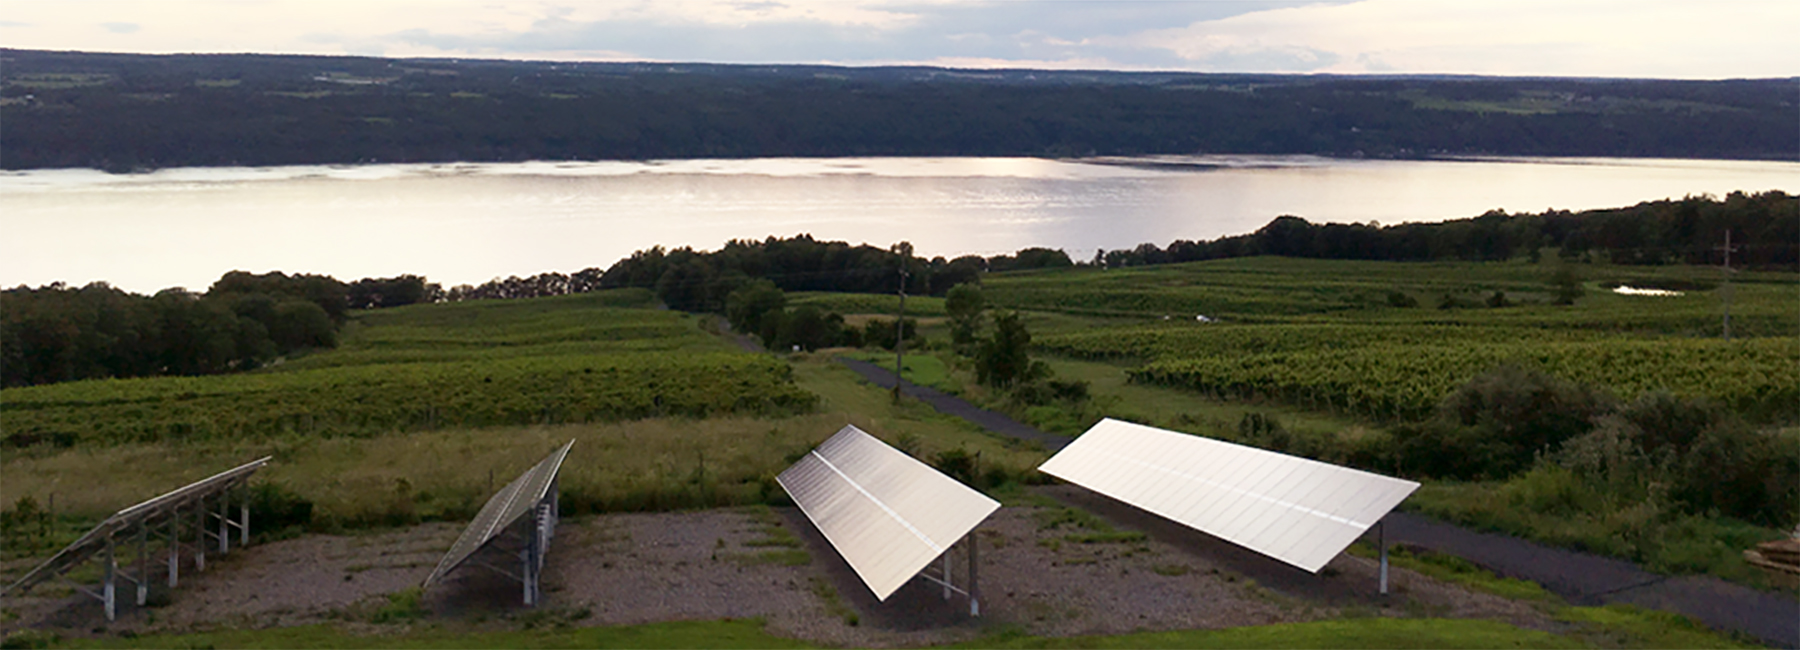 solar-array-overlooking-finger-lakes